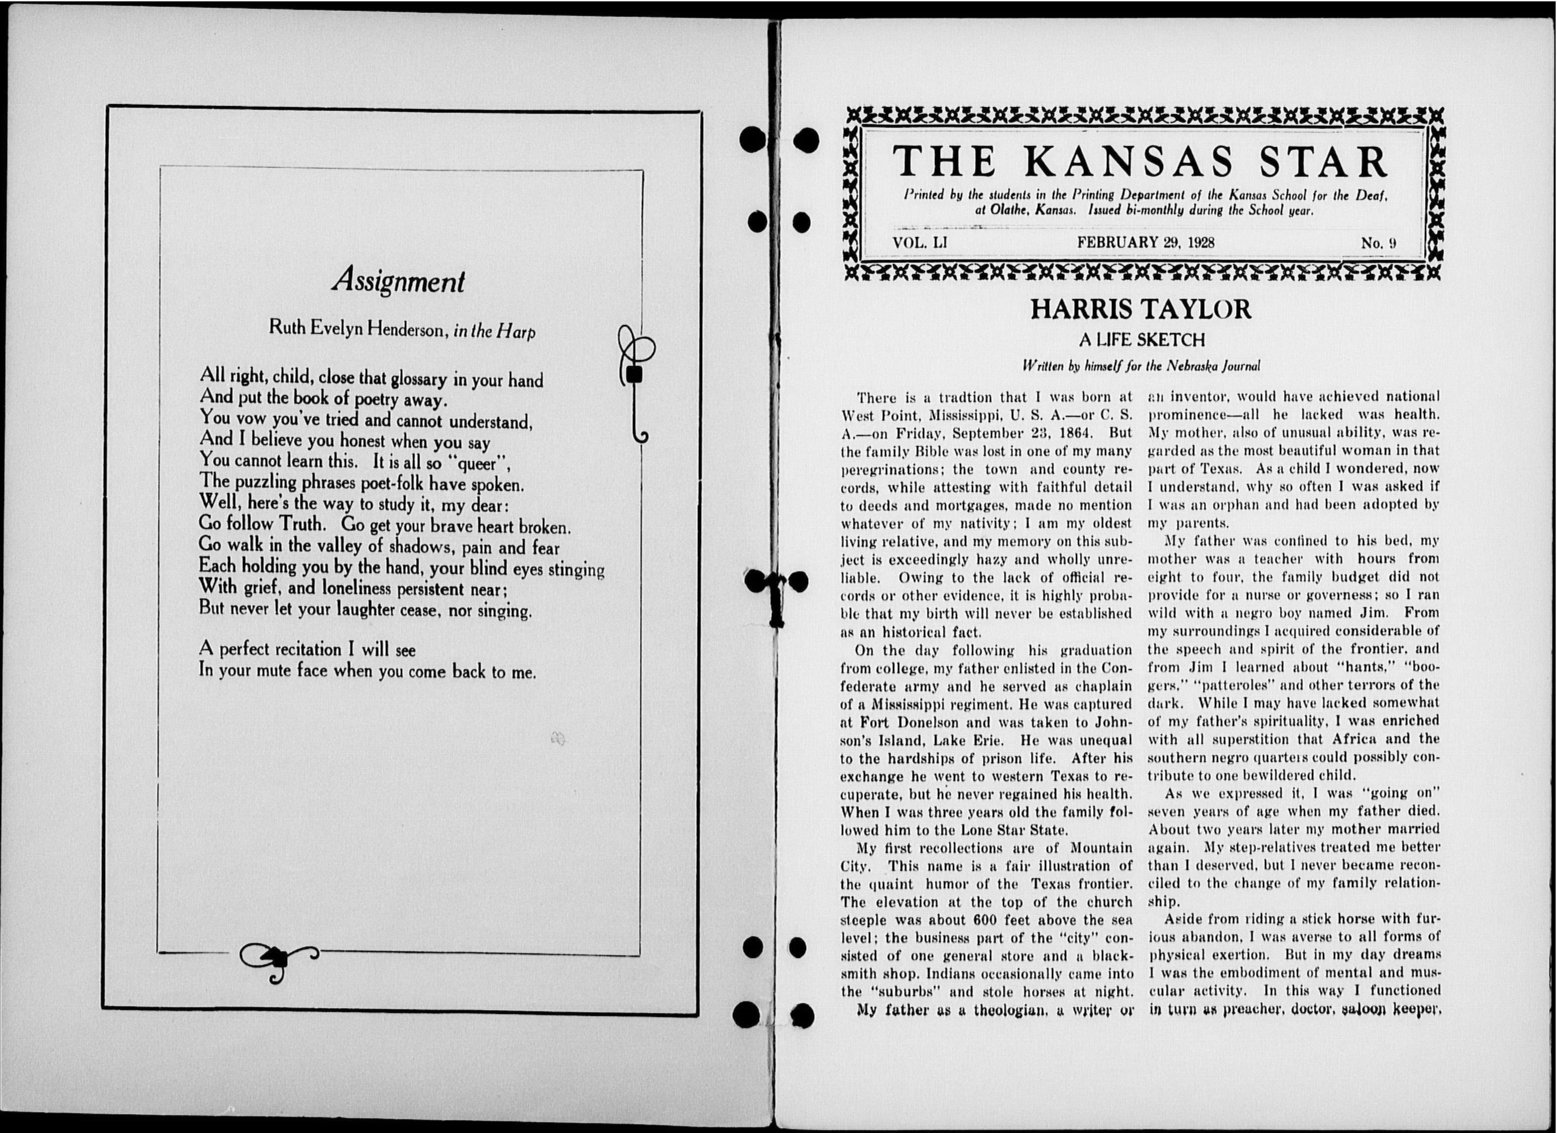 The Kansas Star, volume 51, number 8 - Inside cover -1